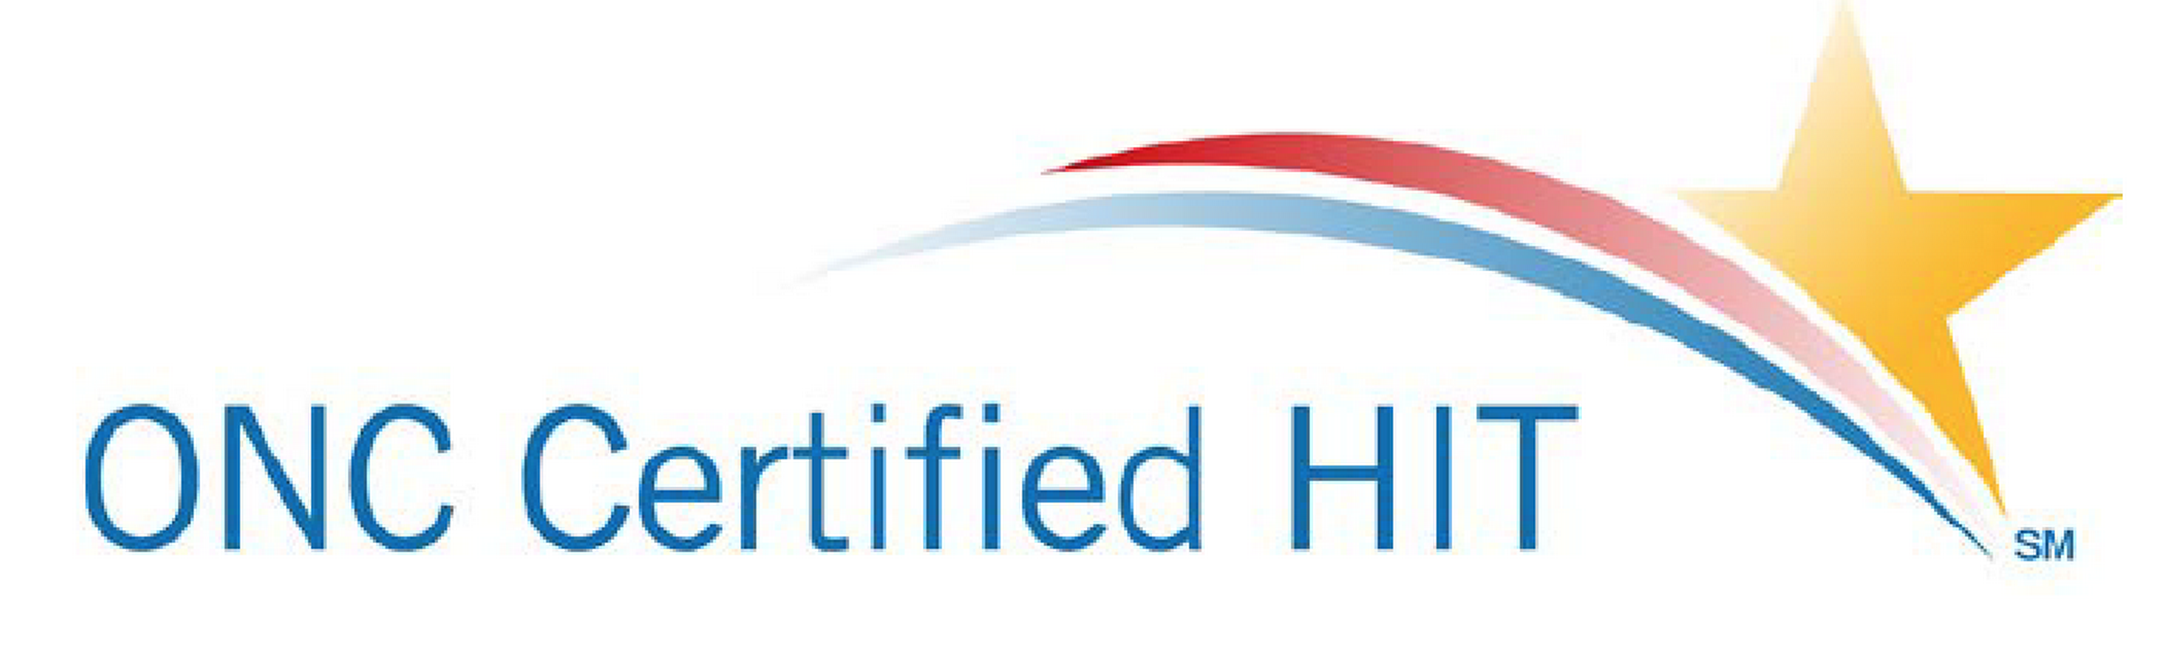 onc certification certified health program hit healthit gov experience user usability consultation chpl